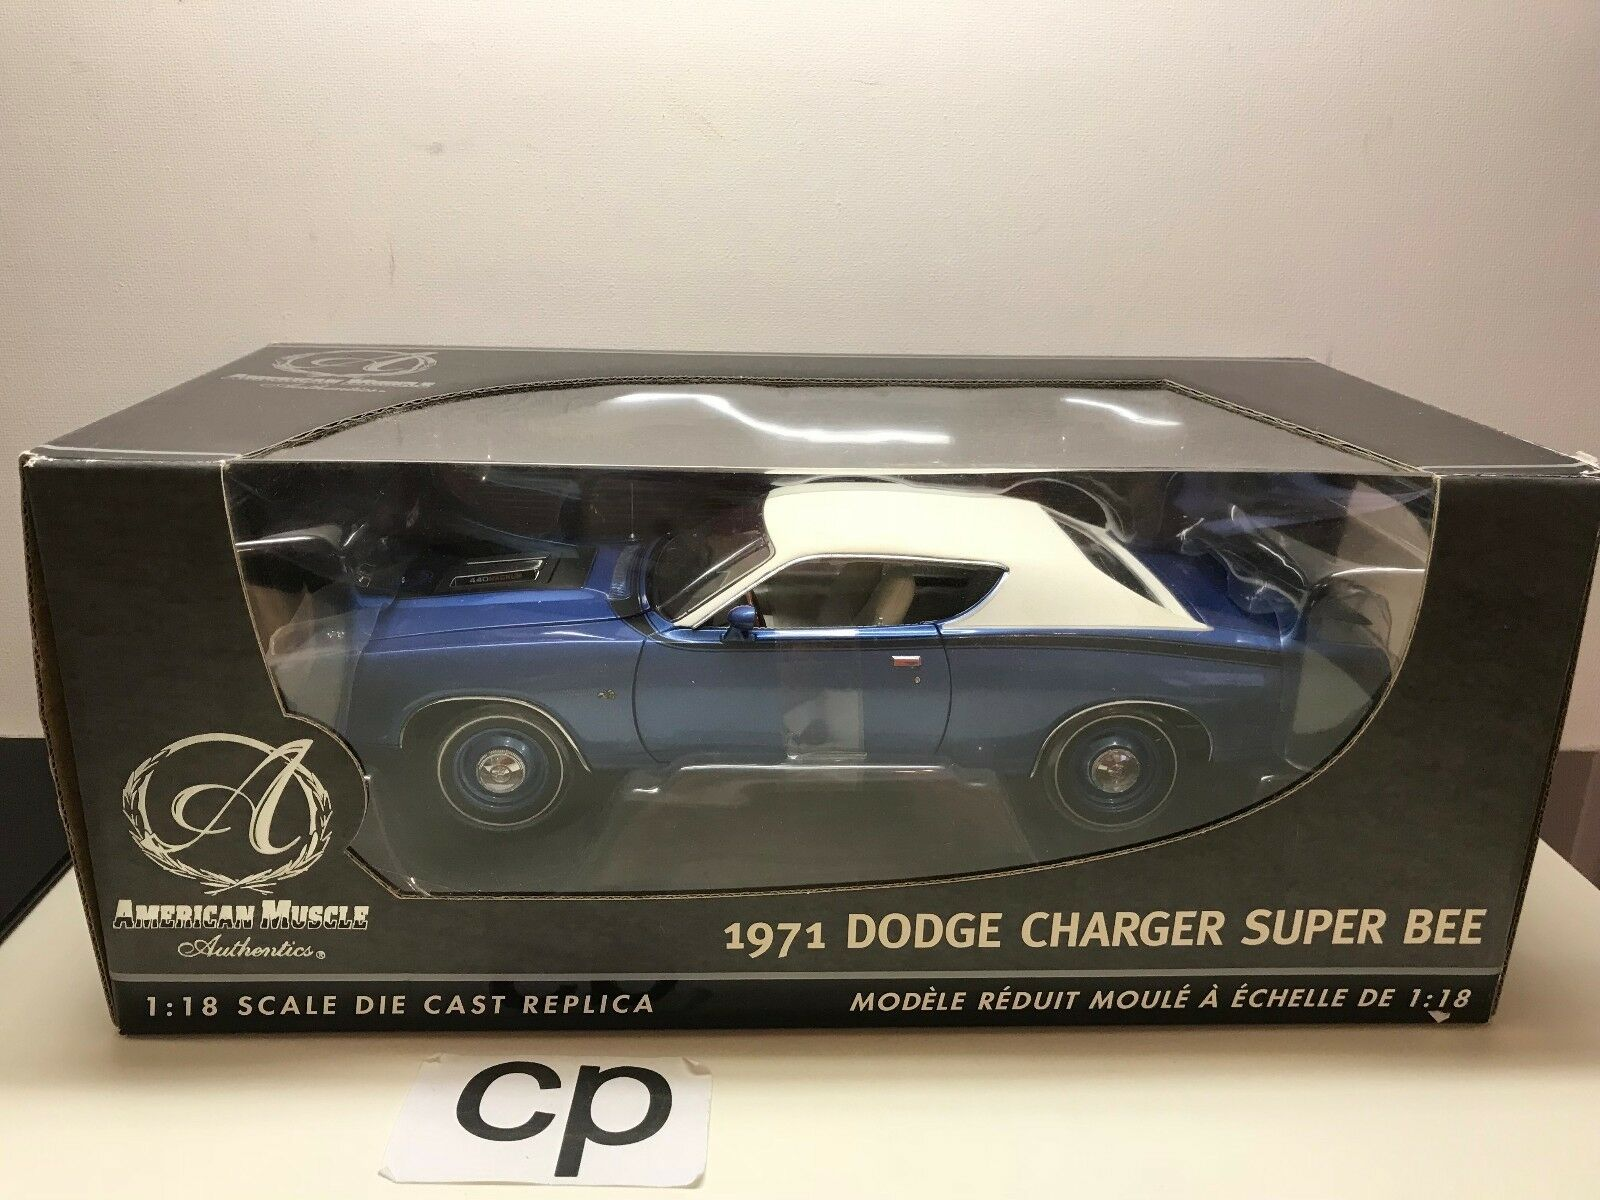 ERTL AMERICAN MUSCLE AUTHENTICS 1971 DODGE CHARGER SUPER BEE 1 18 blueE WHITE TOP